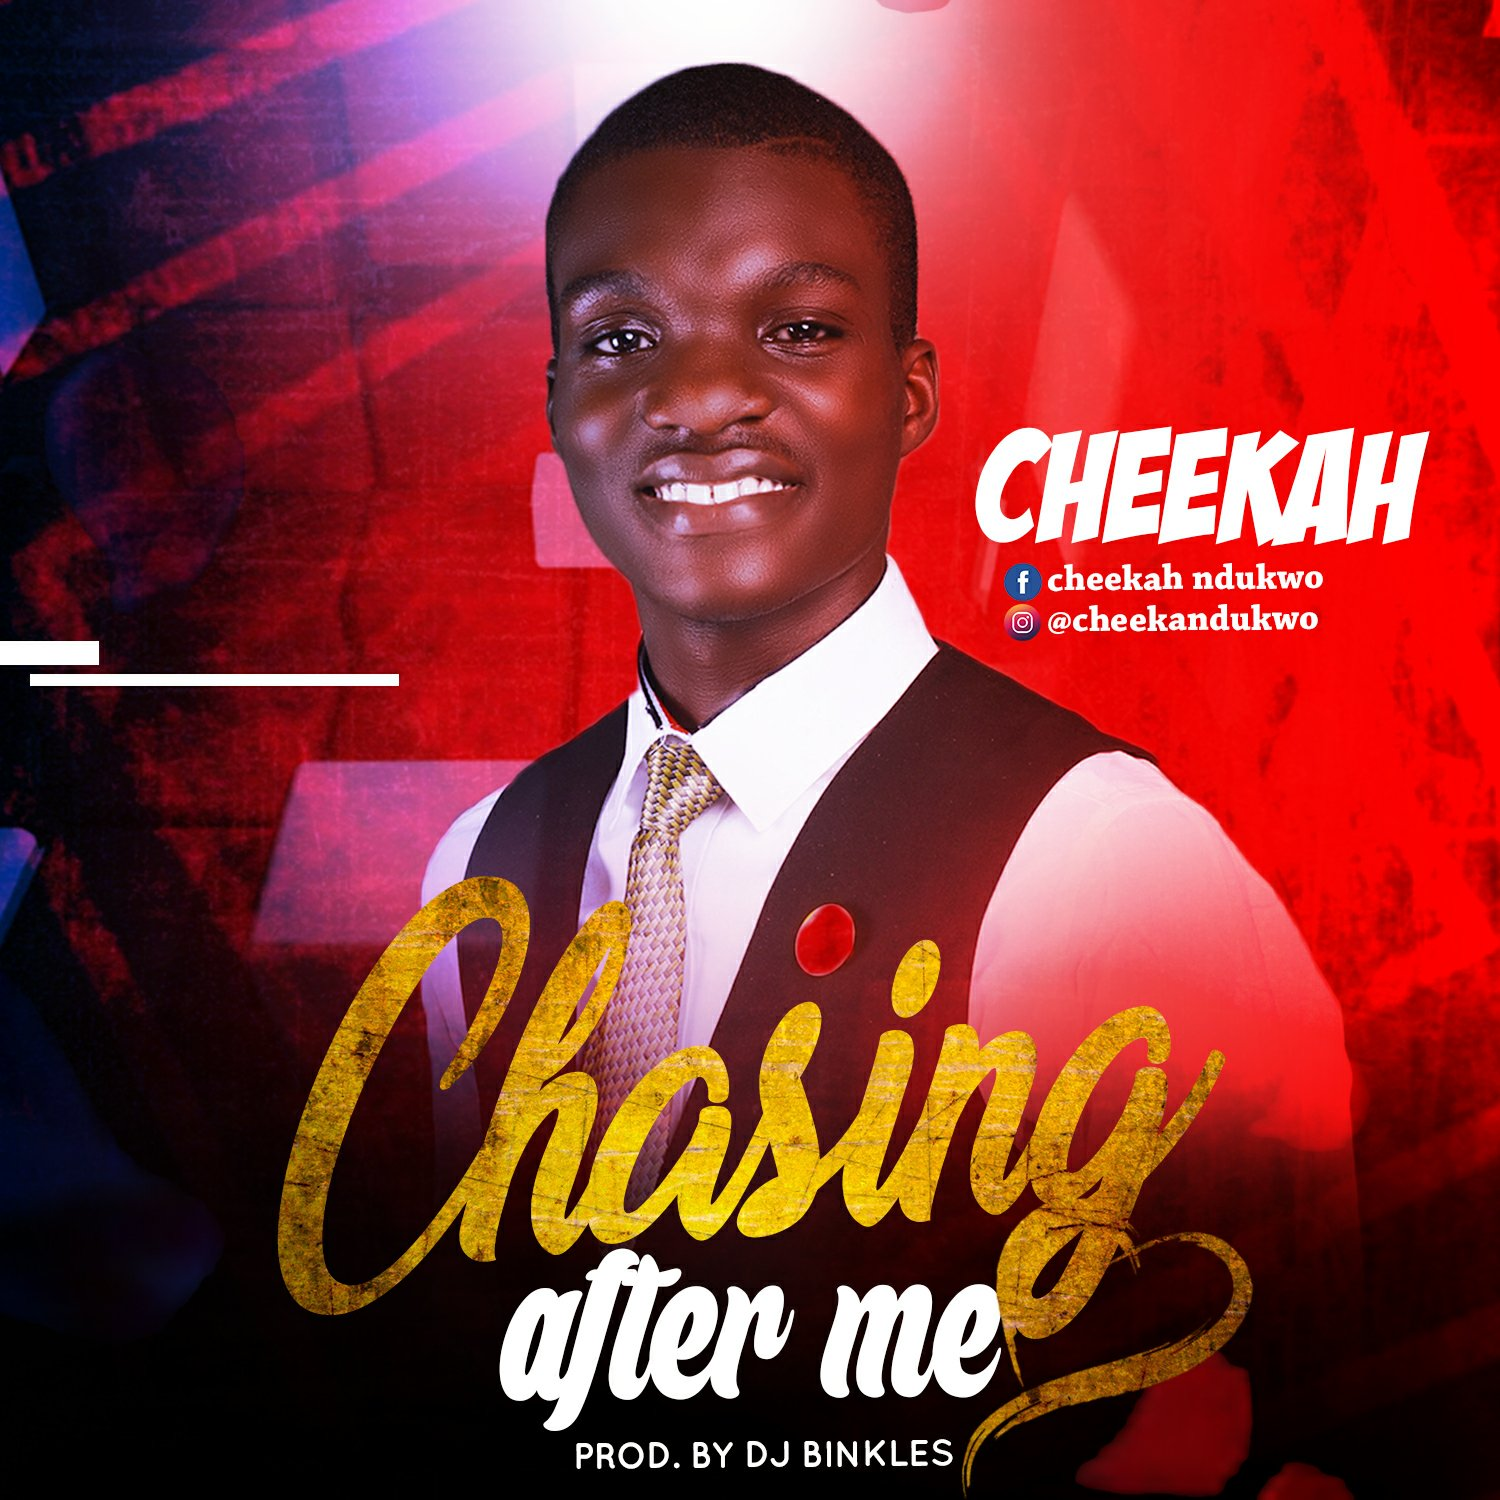 DOWNLOAD Music: Cheekah – Chasing After Me